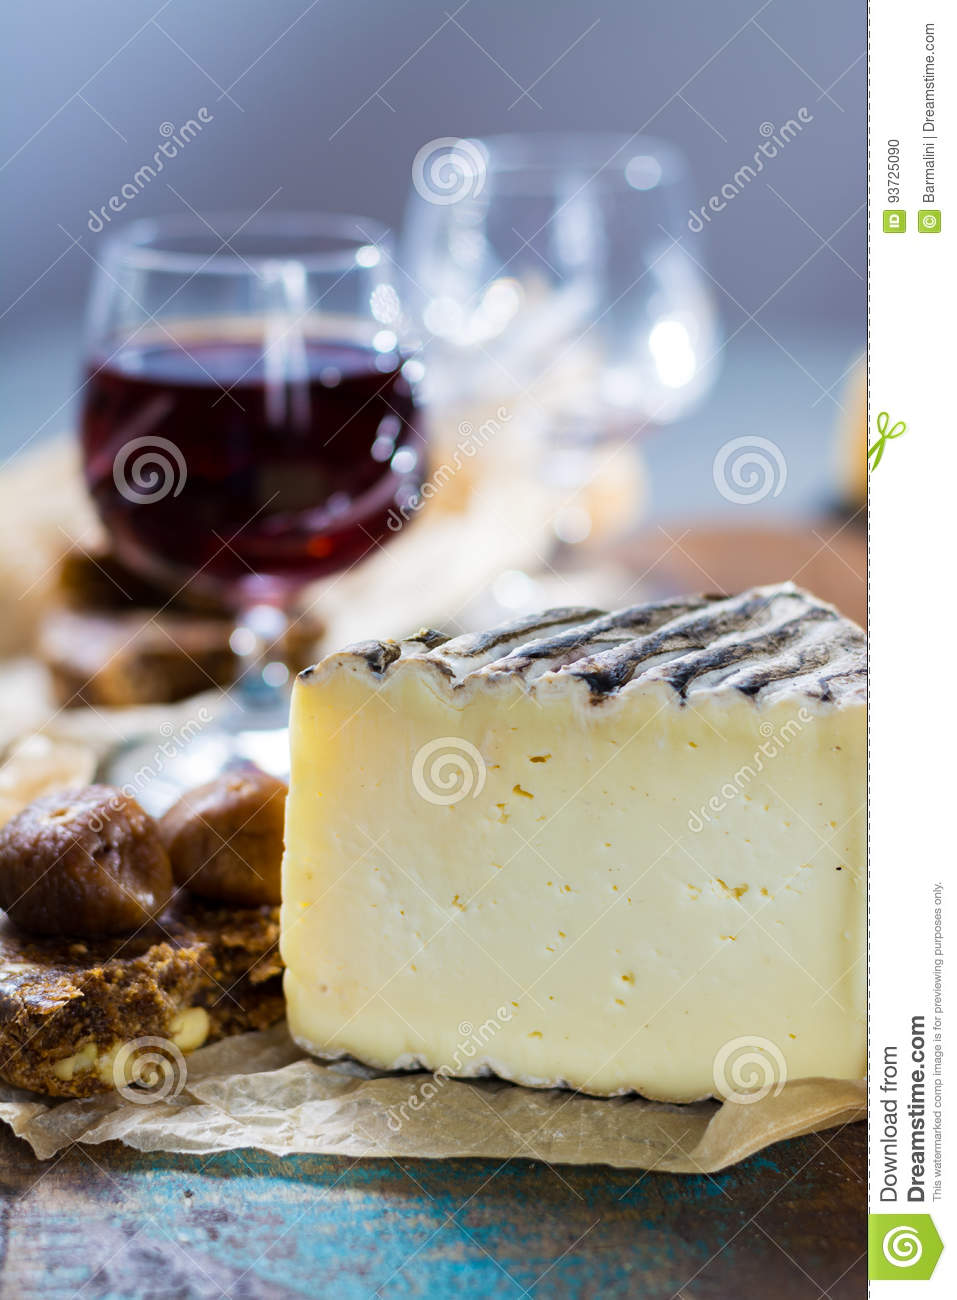 Sweet dessert liqueur wine in glass, hard french cheese Tomme de